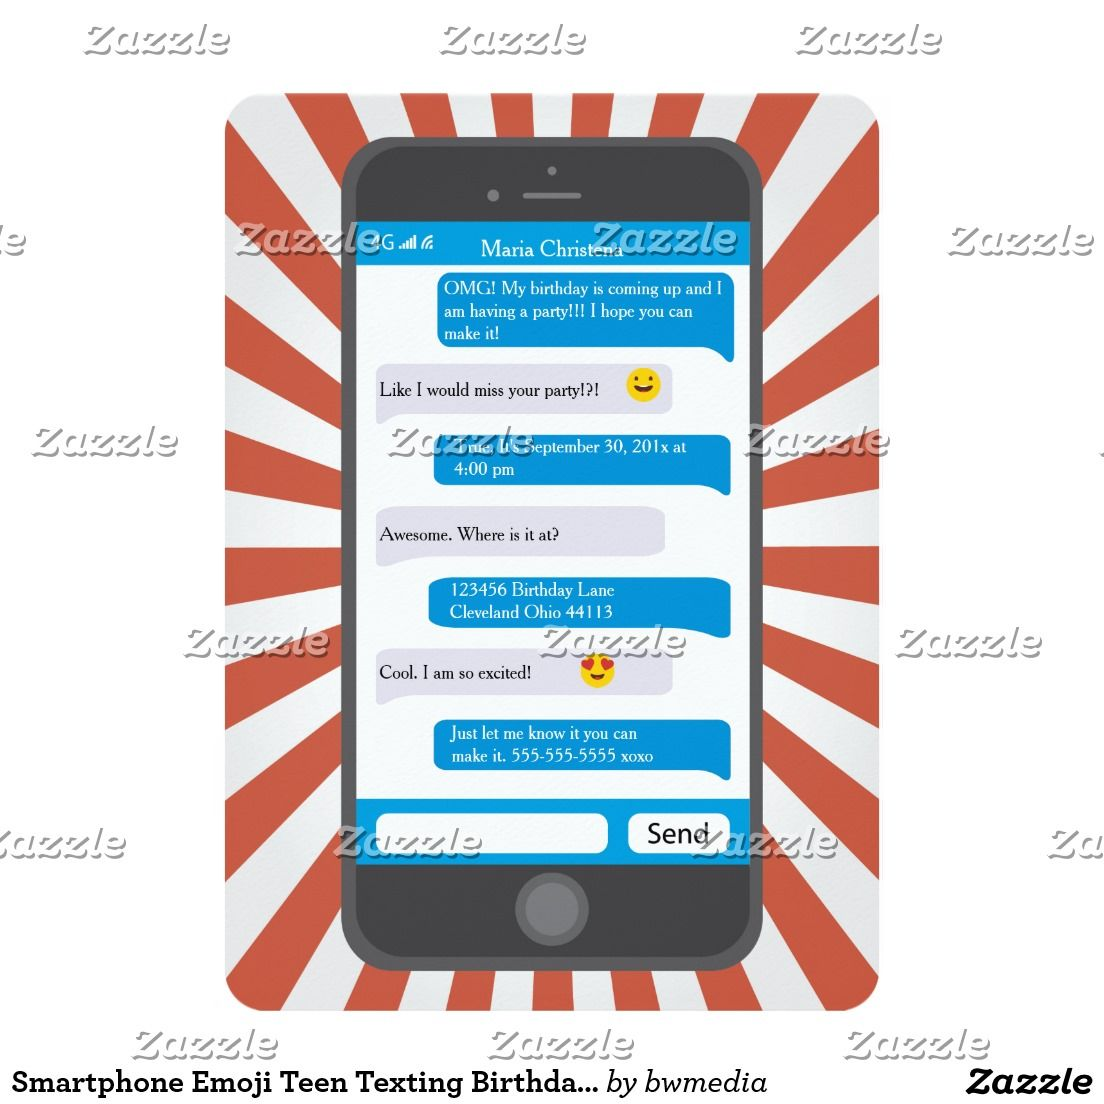 Smartphone Emoji Teen Texting Birthday Party Invitation A Cute And Fun Cellphone Text Message Complete With Emoticons For The